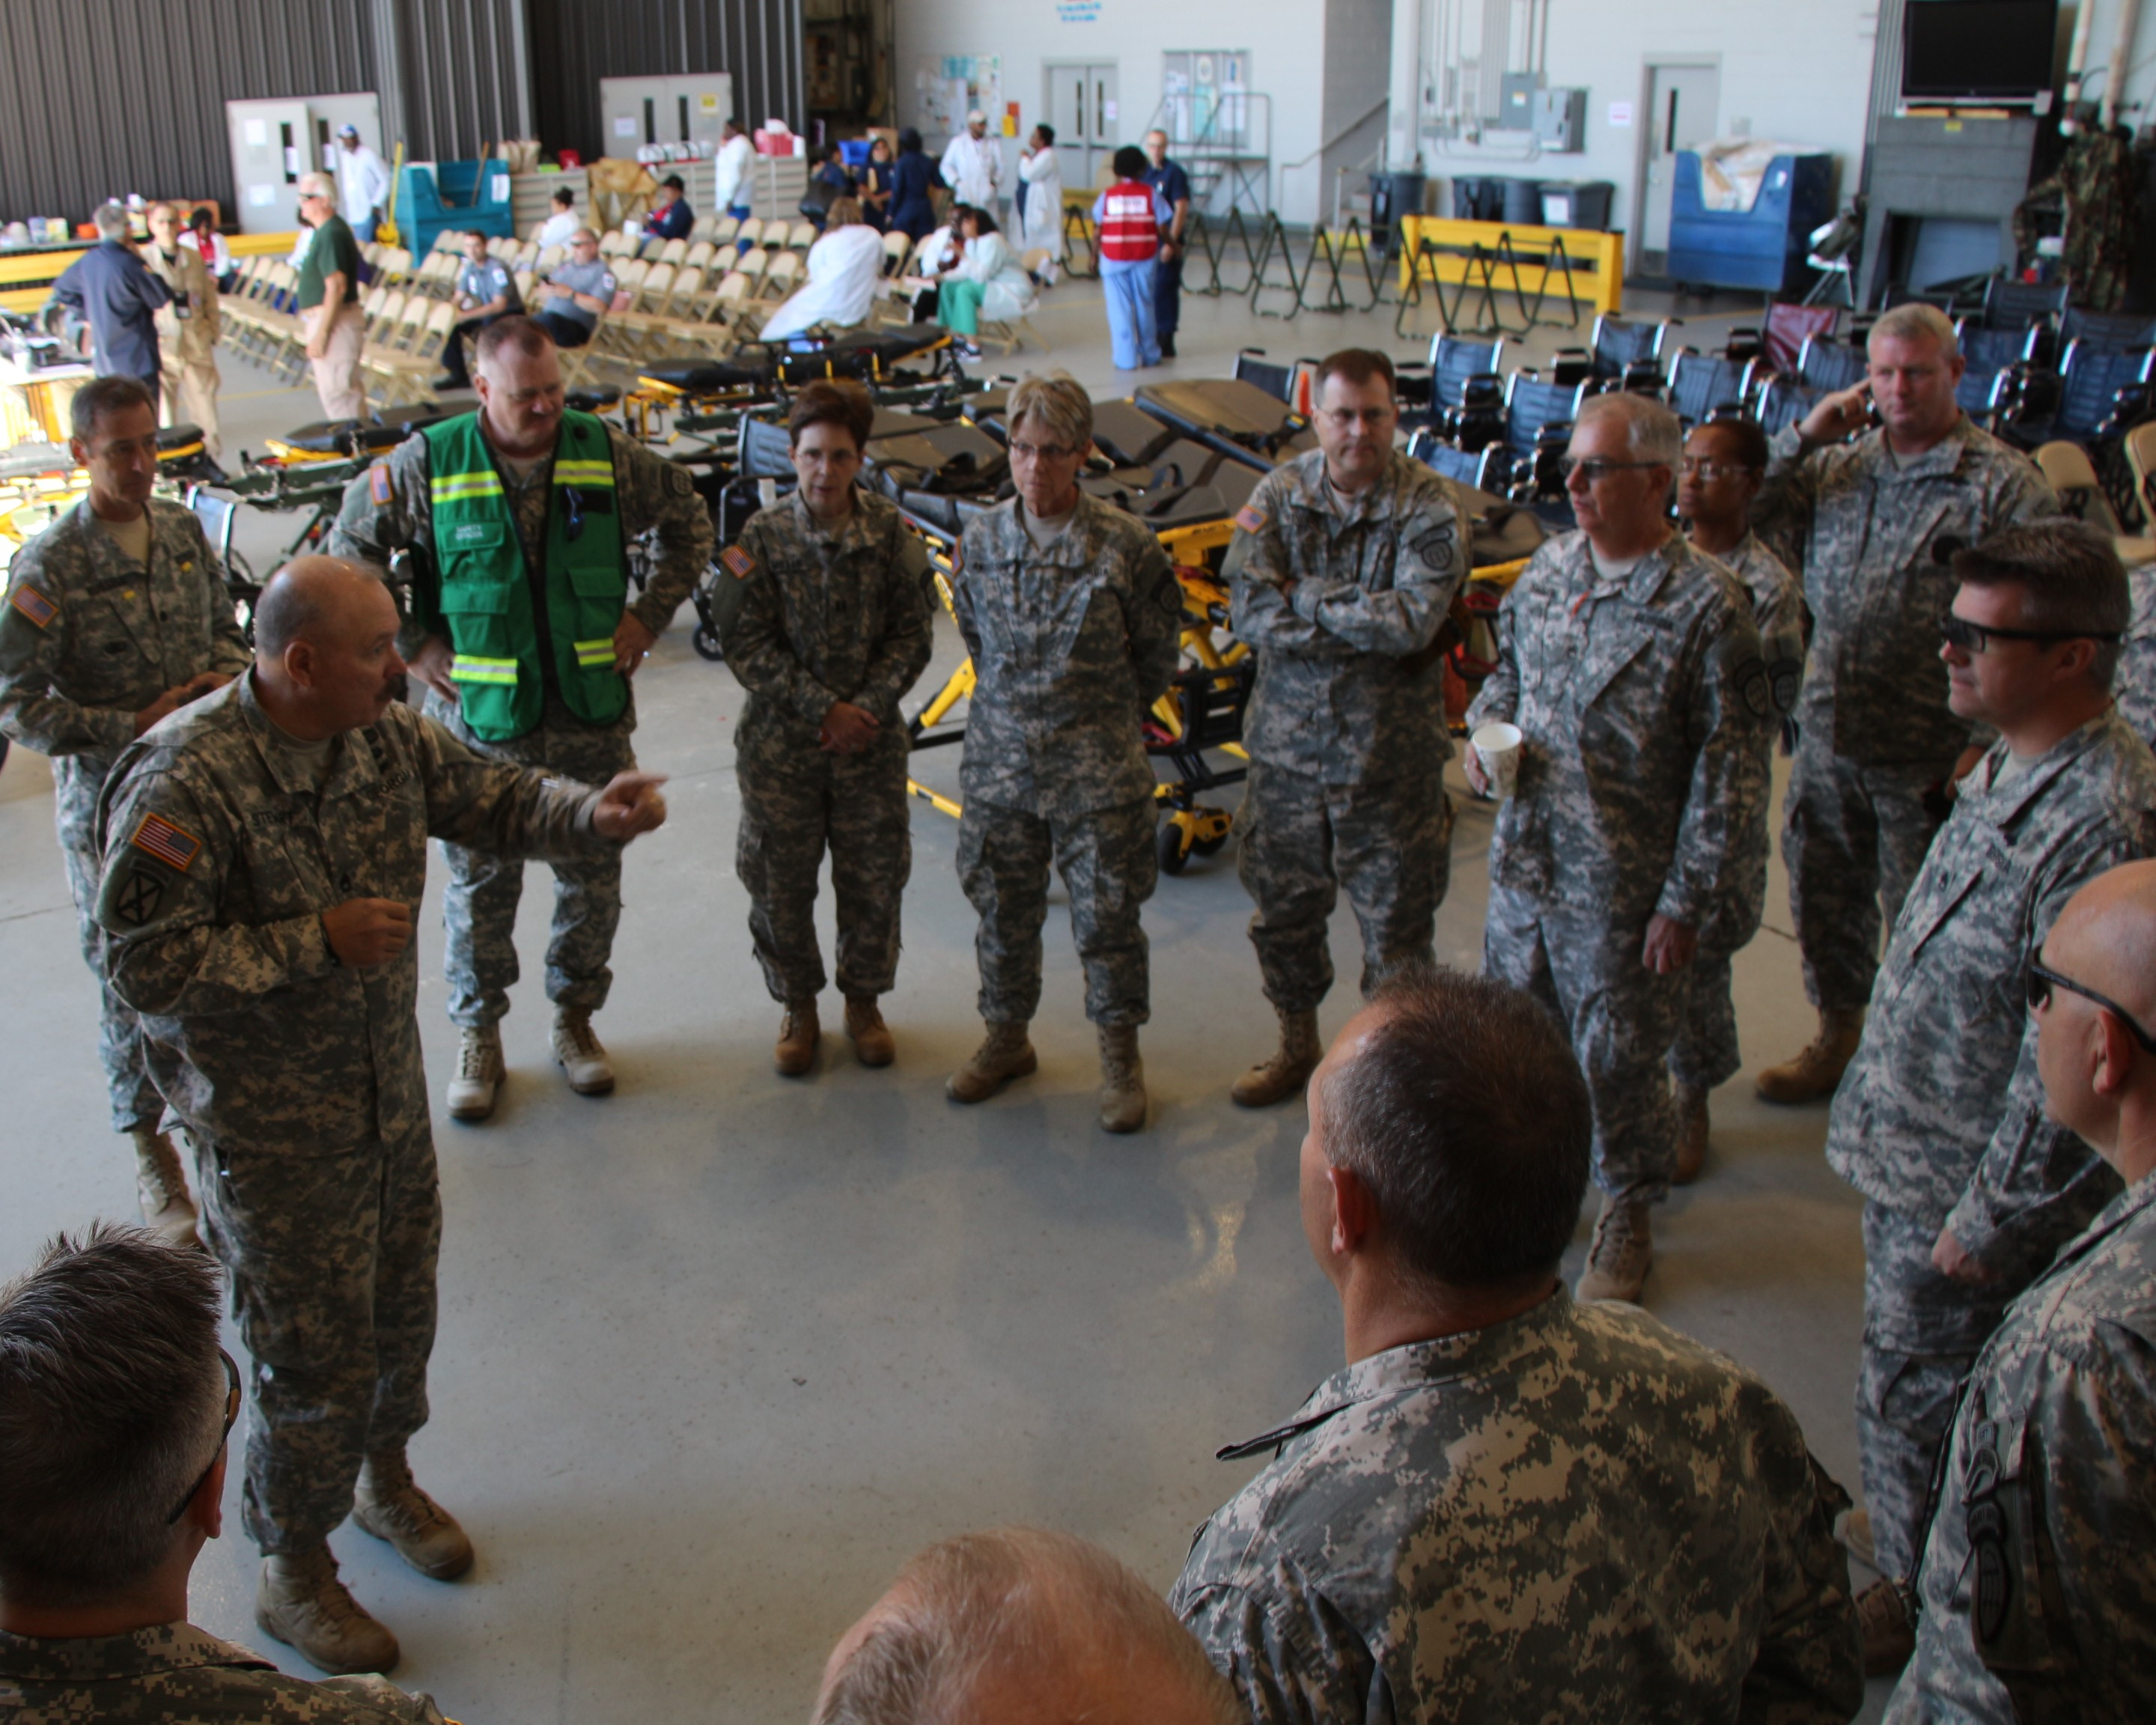 Sergeant First Class Steven Stewart briefs Georgia State Defense Force soldiers with the task details before assigning them to upload evacuees from the C-130H aircraft, who were transported to Dobbins Air Reserve Base, Marietta, Georgia from the U.S. Virgin Islands and Puerto Rico in the aftermath of Hurricane Maria, Oct. 1, 2017. Georgia State Defense Force photo by Maj. Vadim Timchenko